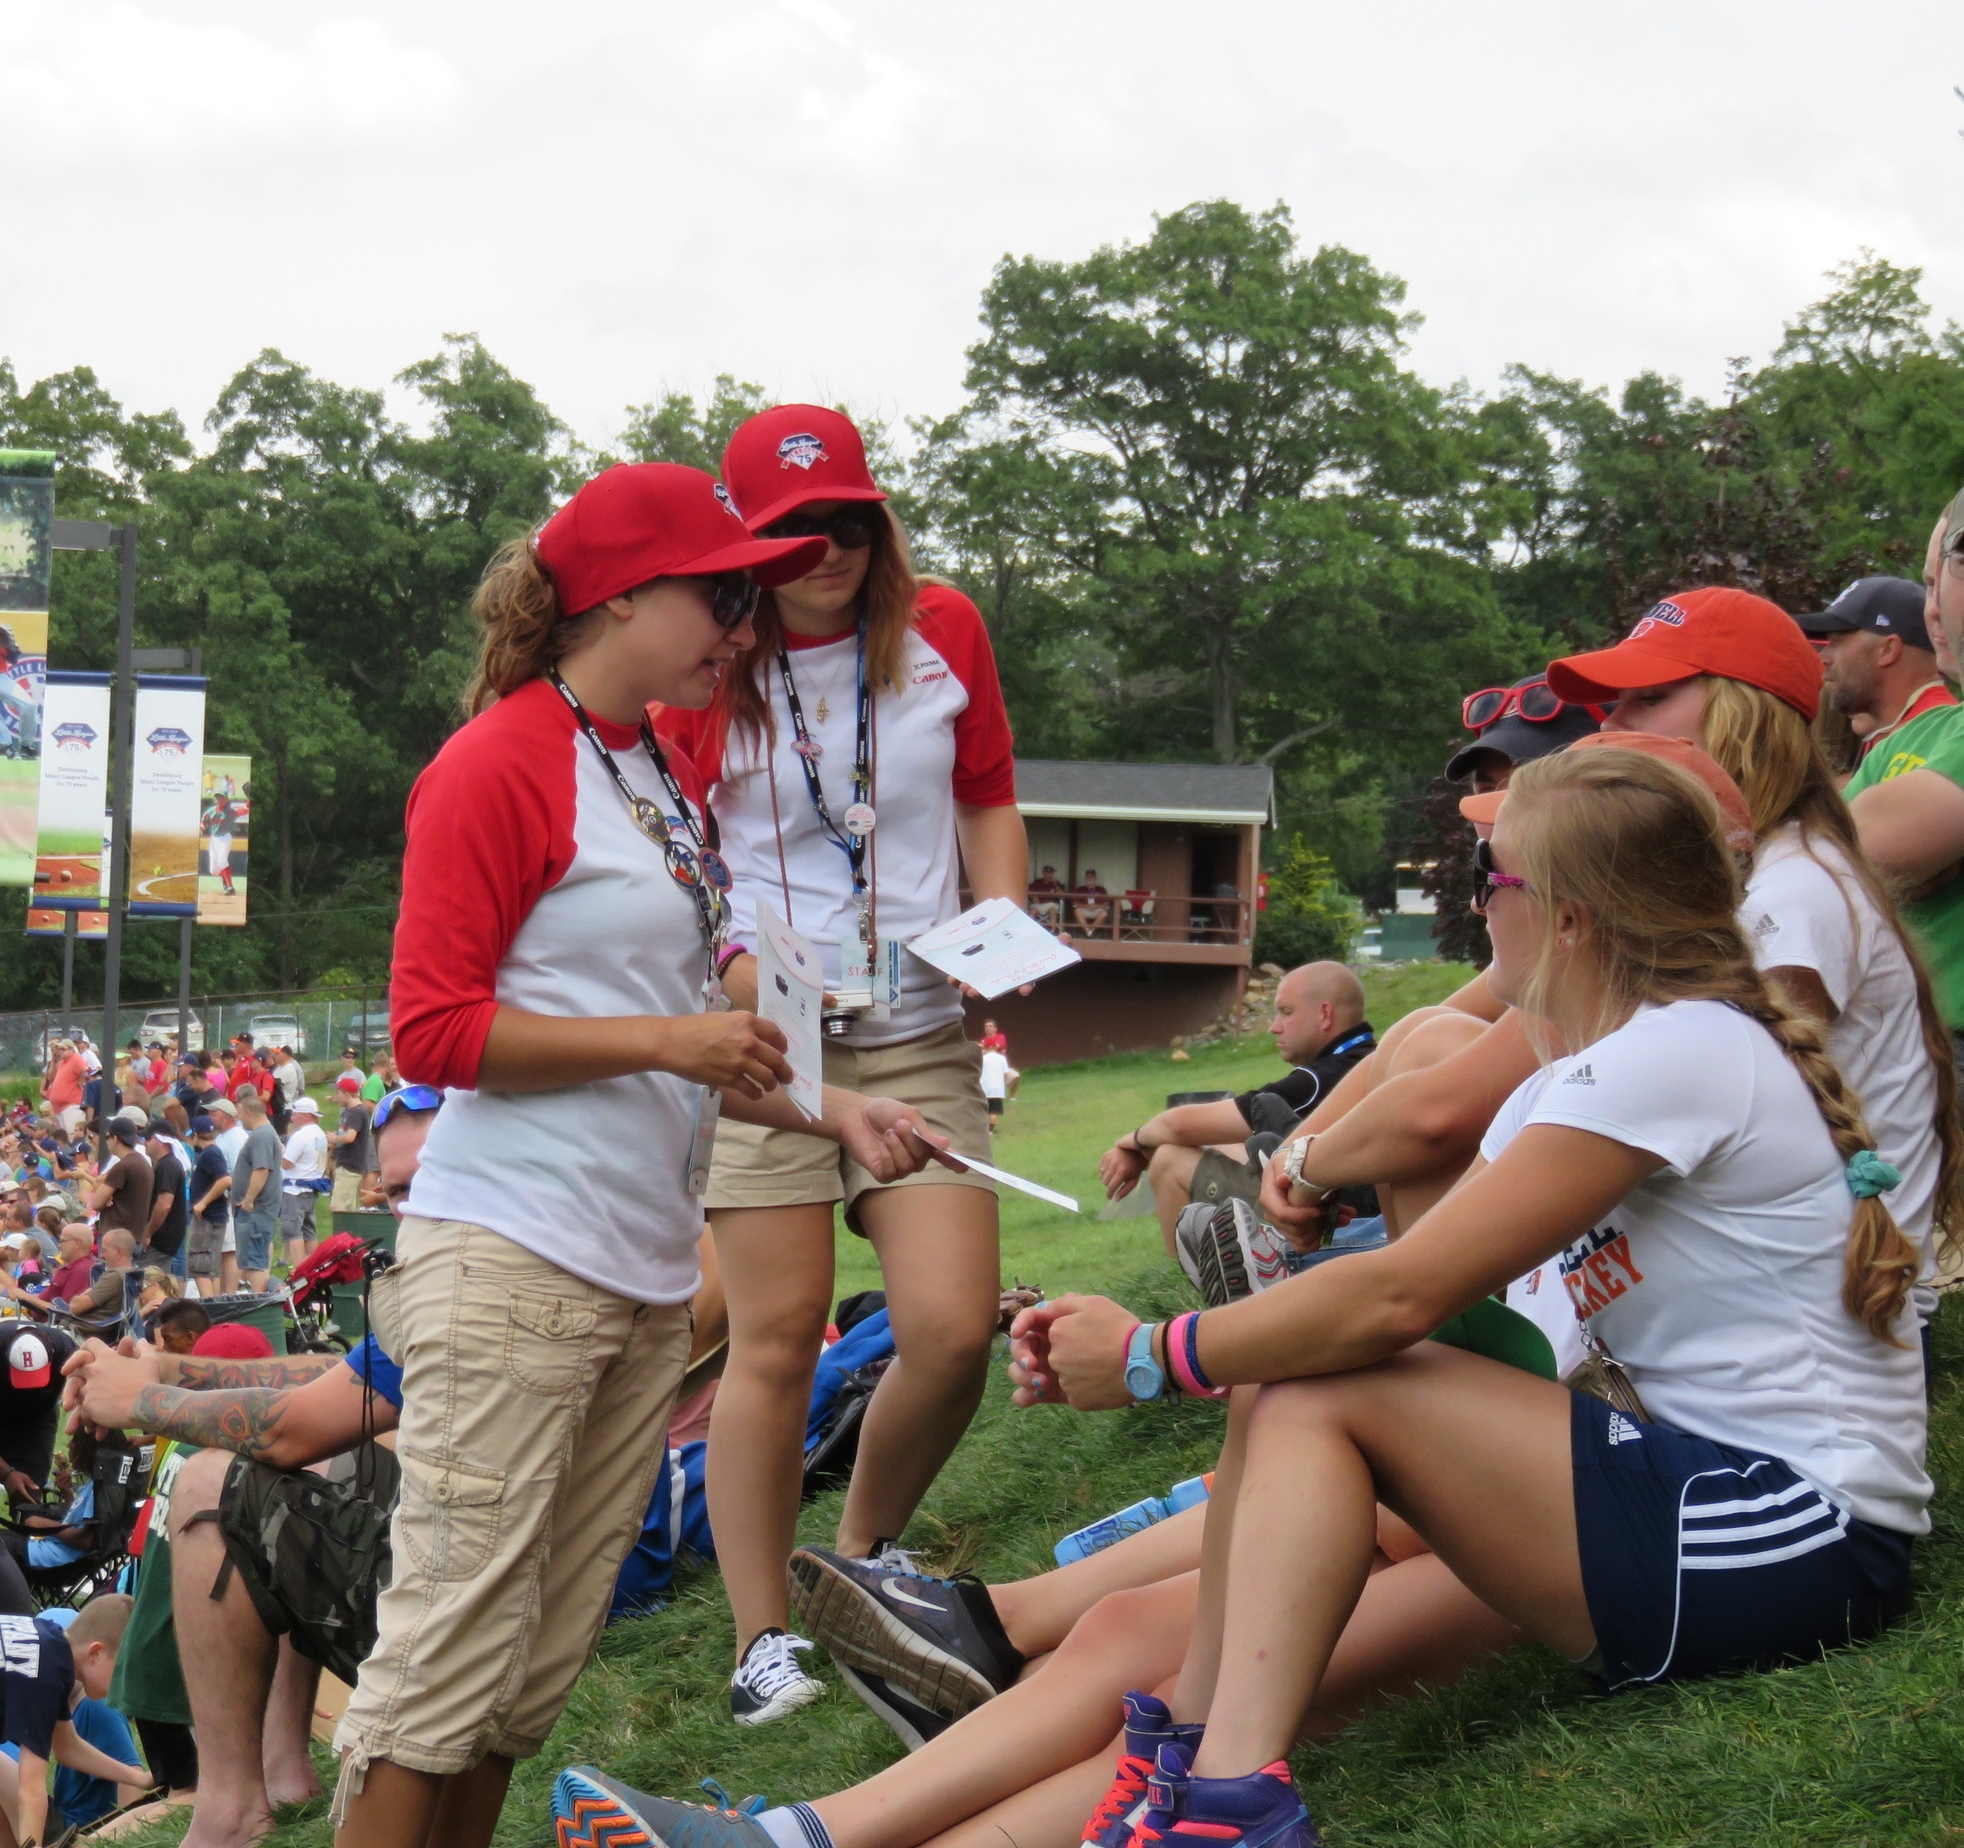 Brand Ambassadors distributing Canon sponsorship booth fliers at the Little League World Series in 2014